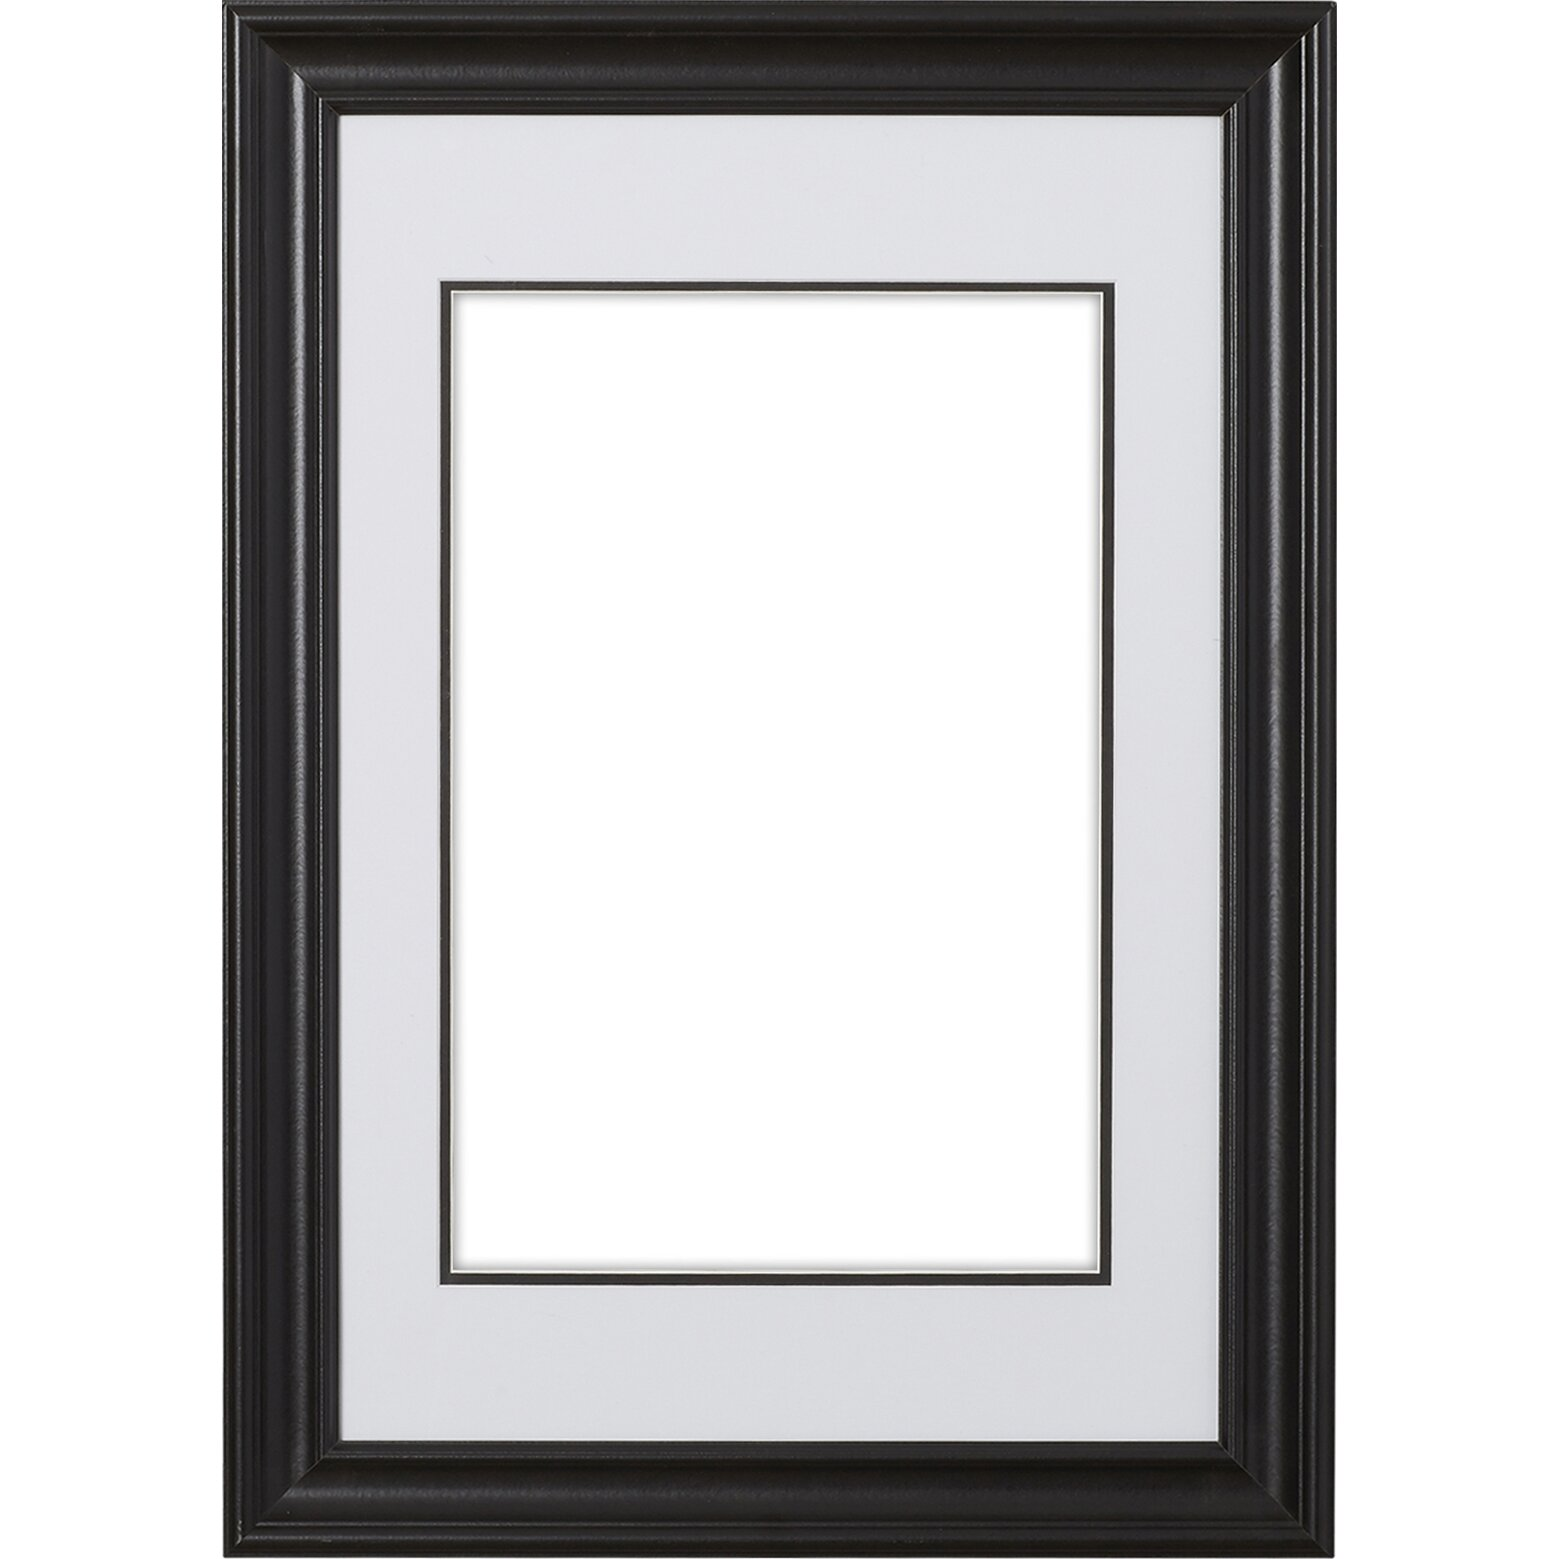 Matted Picture Frame Barcelona Pewter Photo Frame 16x20